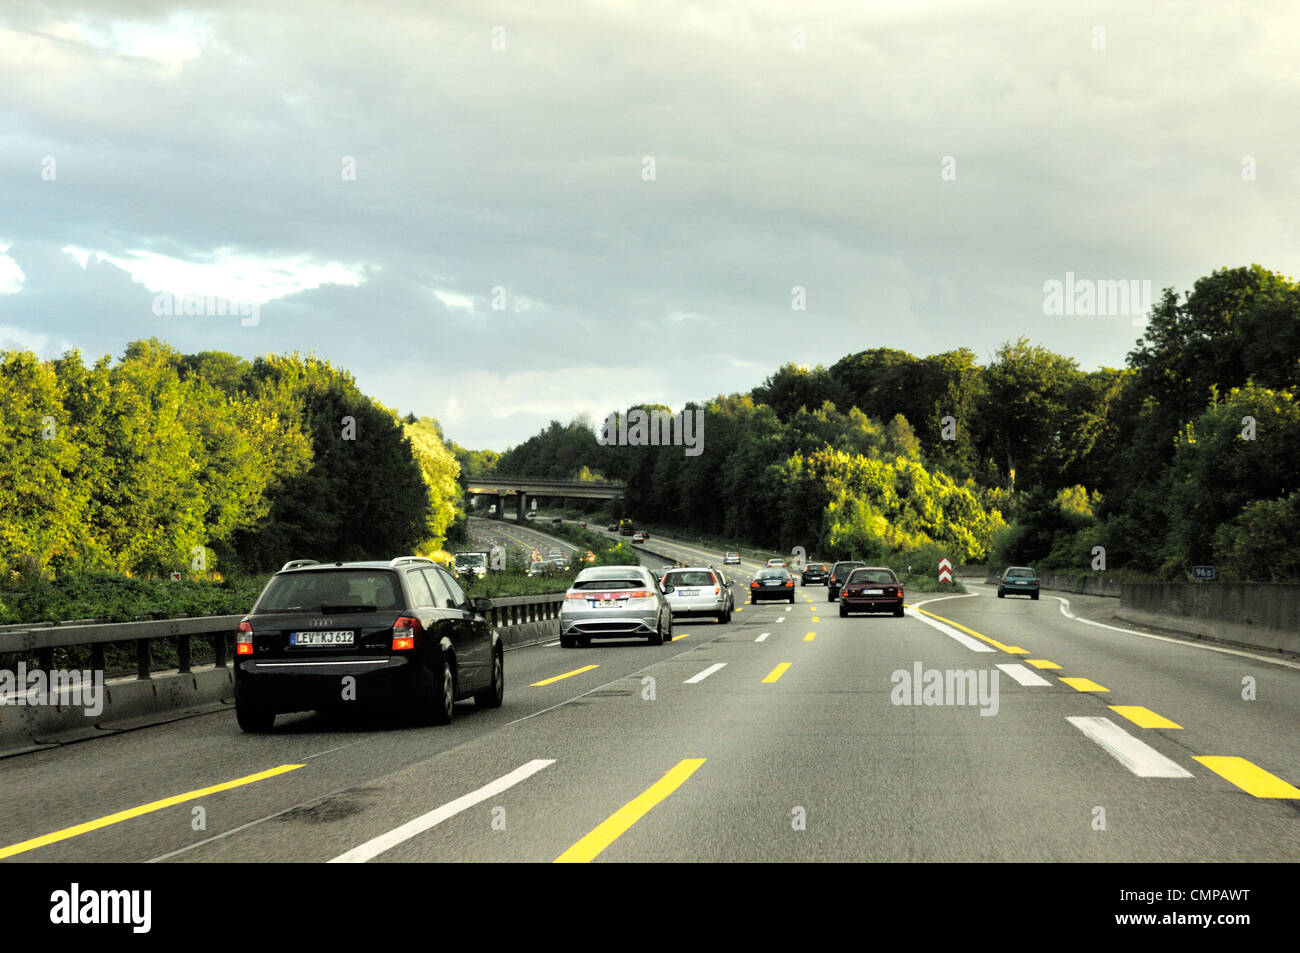 Driving on German autobahn motorway in Nordrhein-Westfalen. Turn off intersection near Dusseldorf. Evening light - Stock Image